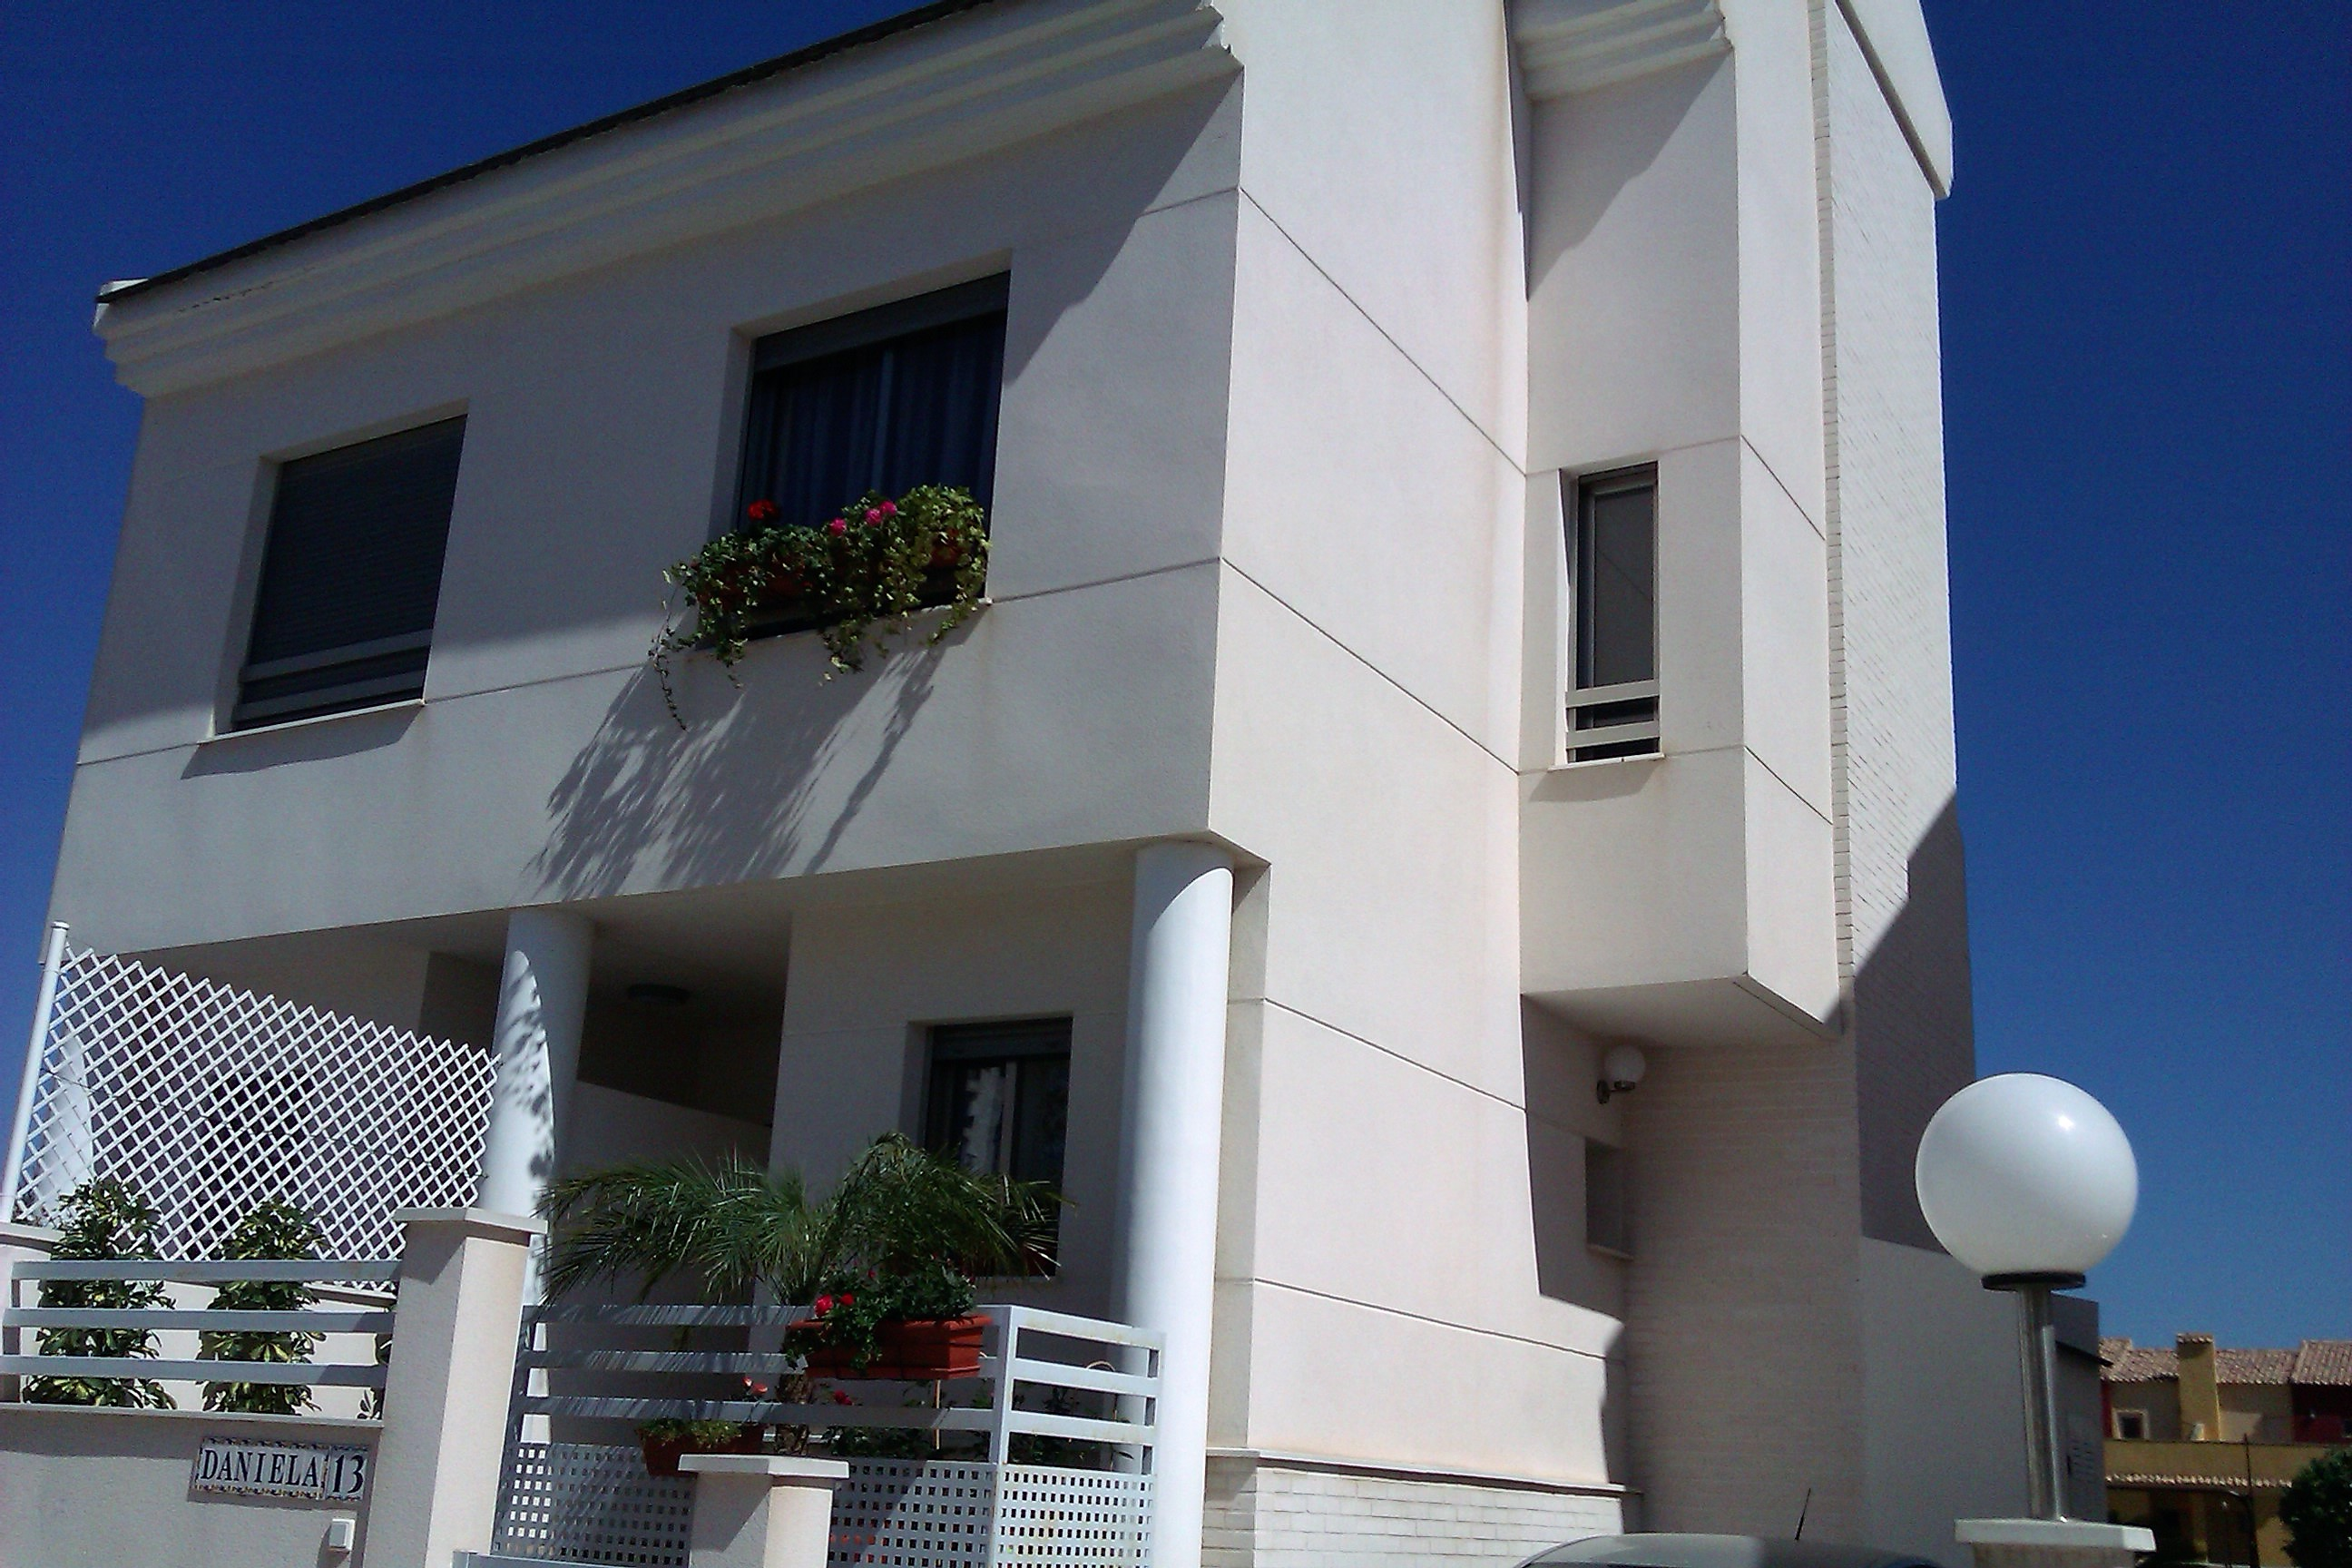 4 bedroom Townhouse for sale in Guardamar del Segura